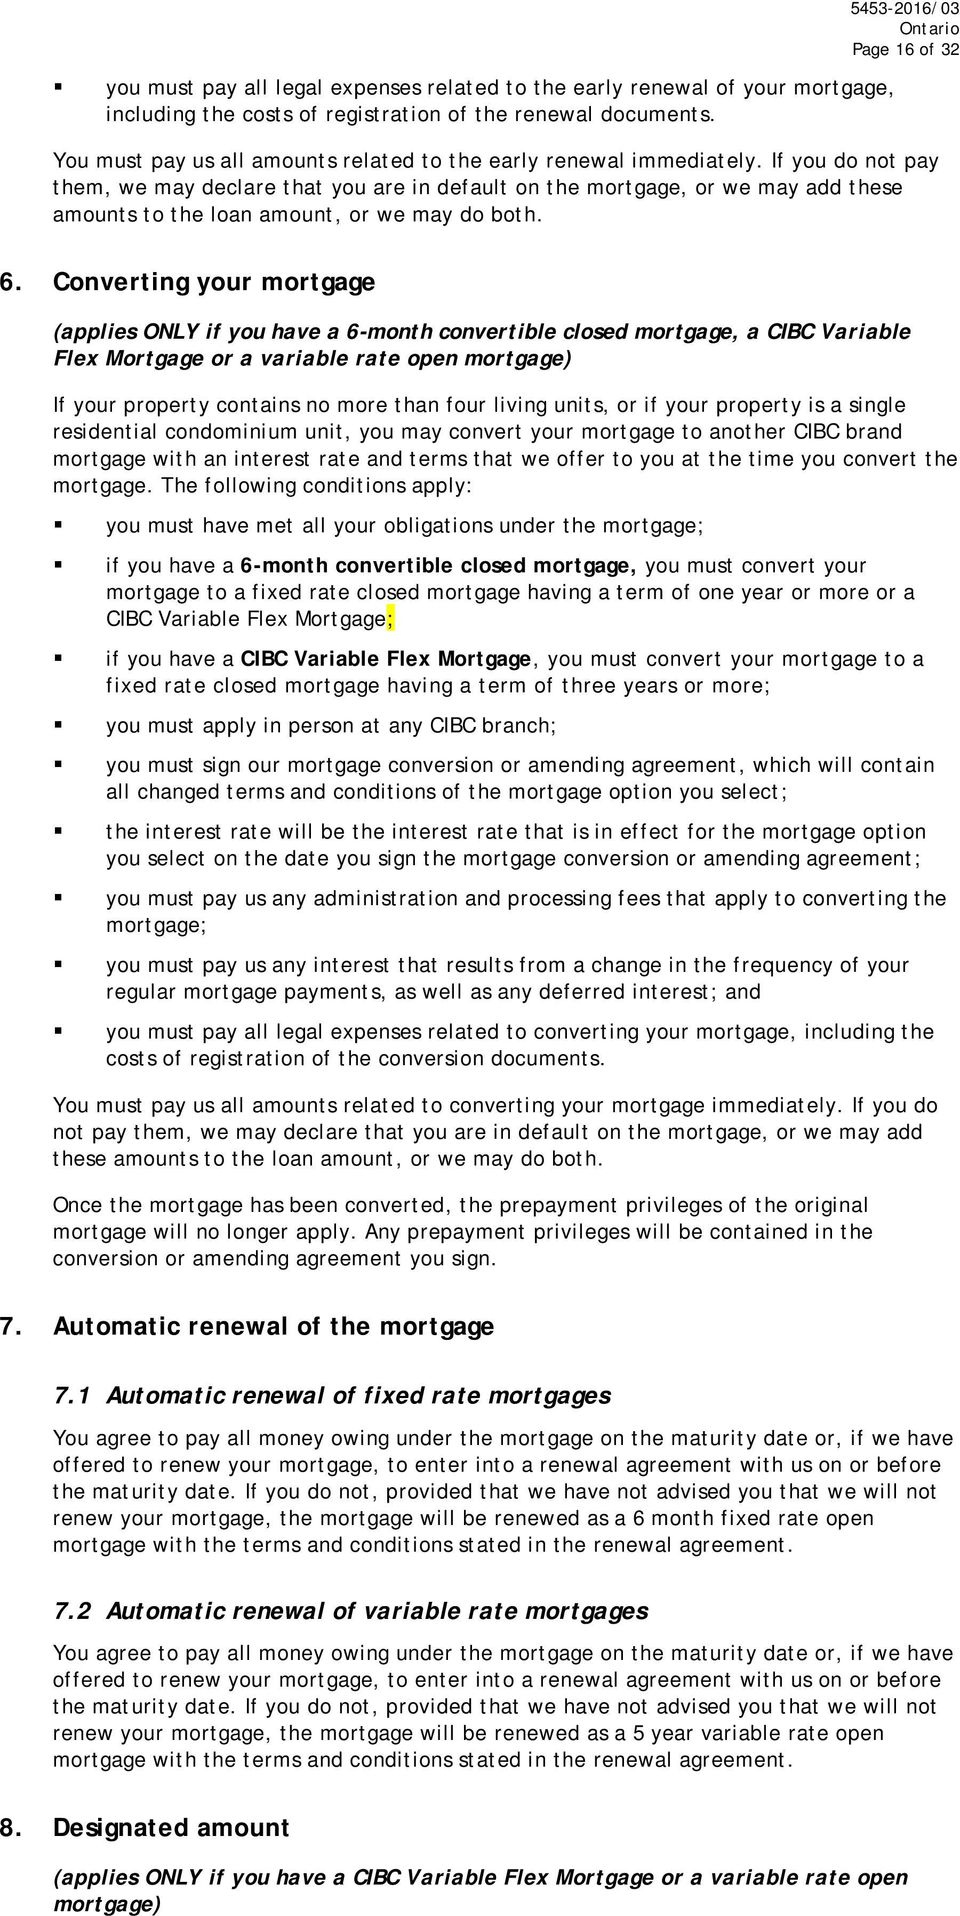 If you do not pay them, we may declare that you are in default on the mortgage, or we may add these amounts to the loan amount, or we may do both. 6.